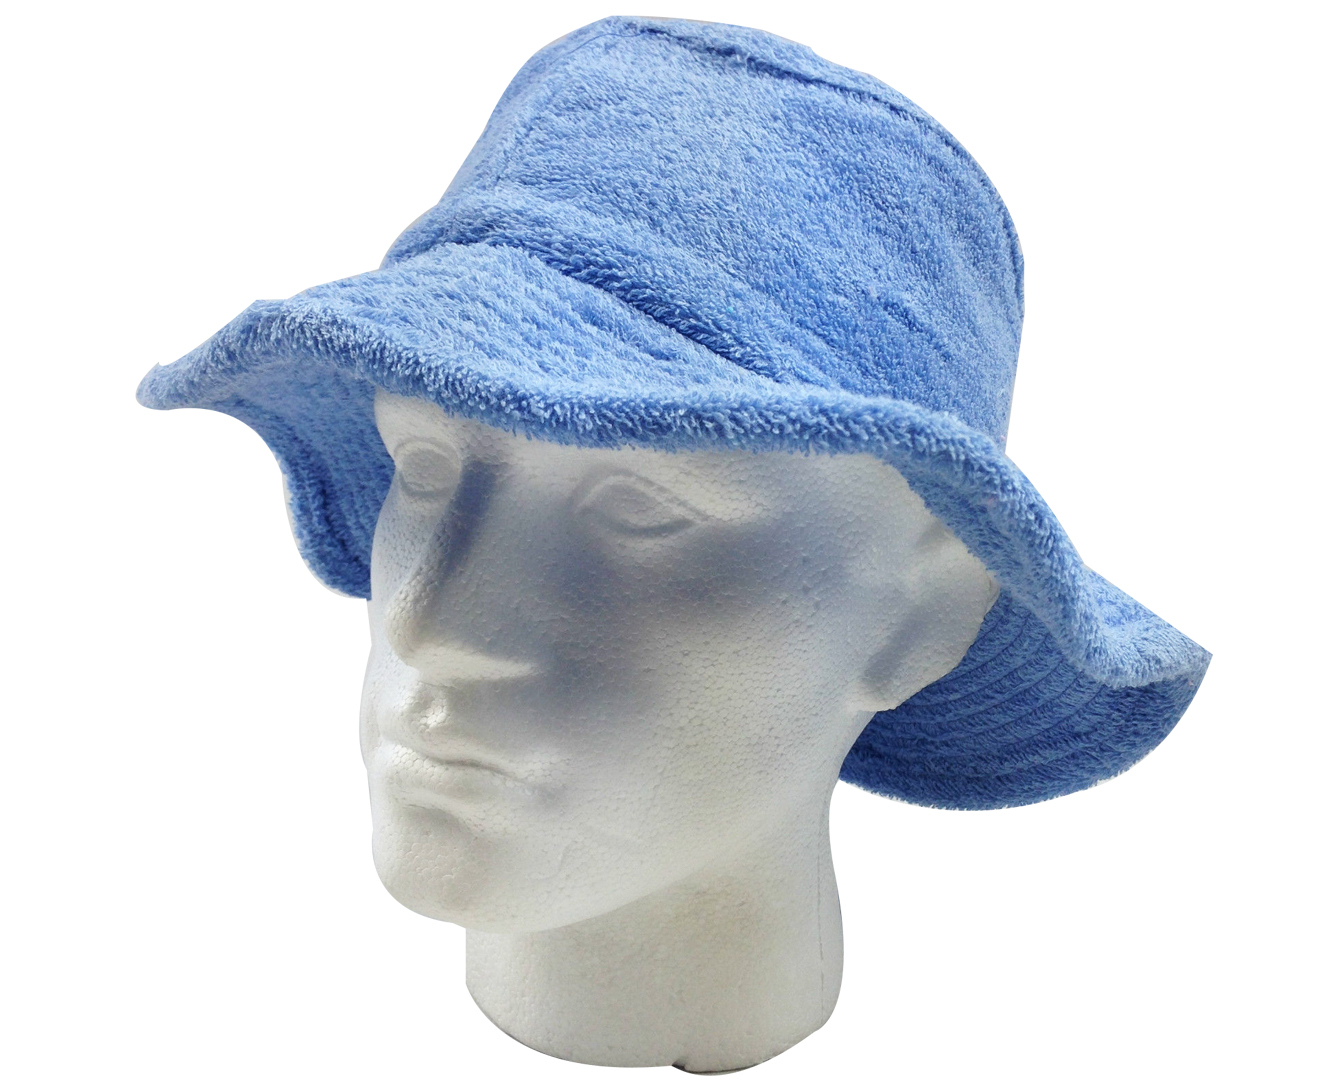 Terry-Towelling-BUCKET-HAT-Daggy-Fishing-Camping-Lad-Cap-Retro-New-100-COTTON thumbnail 88